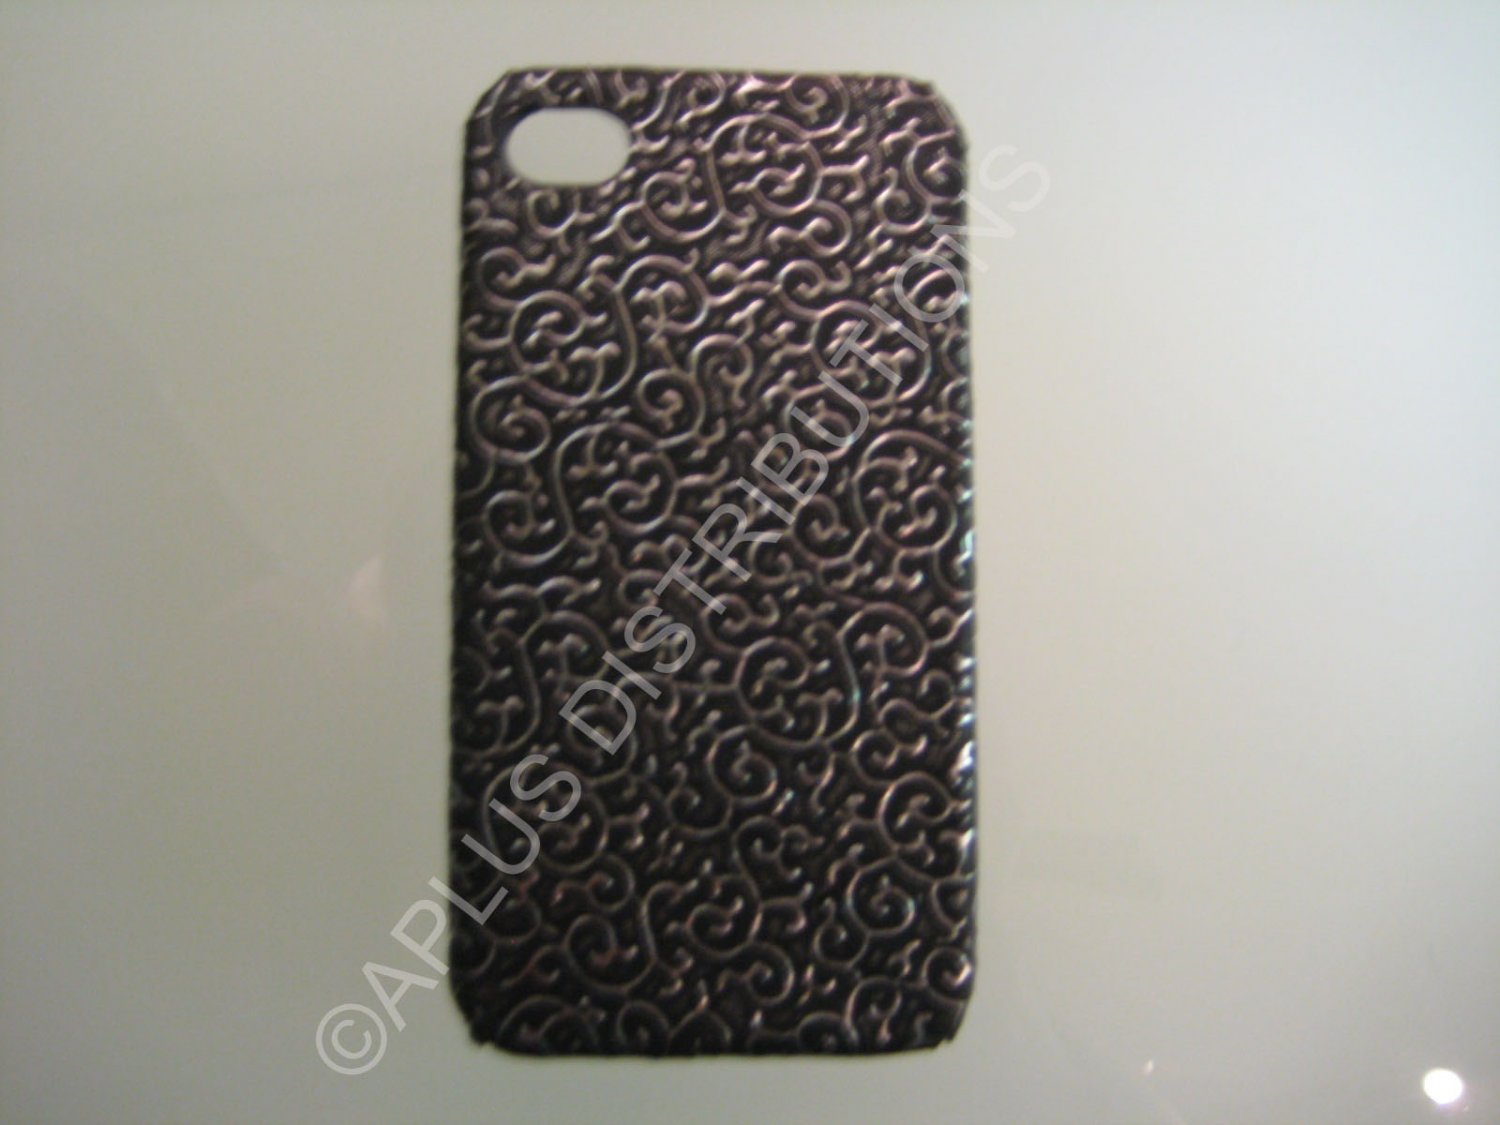 New Black Ornate Vines Design Hard Protective Cover For iPhone 4 - (0085)